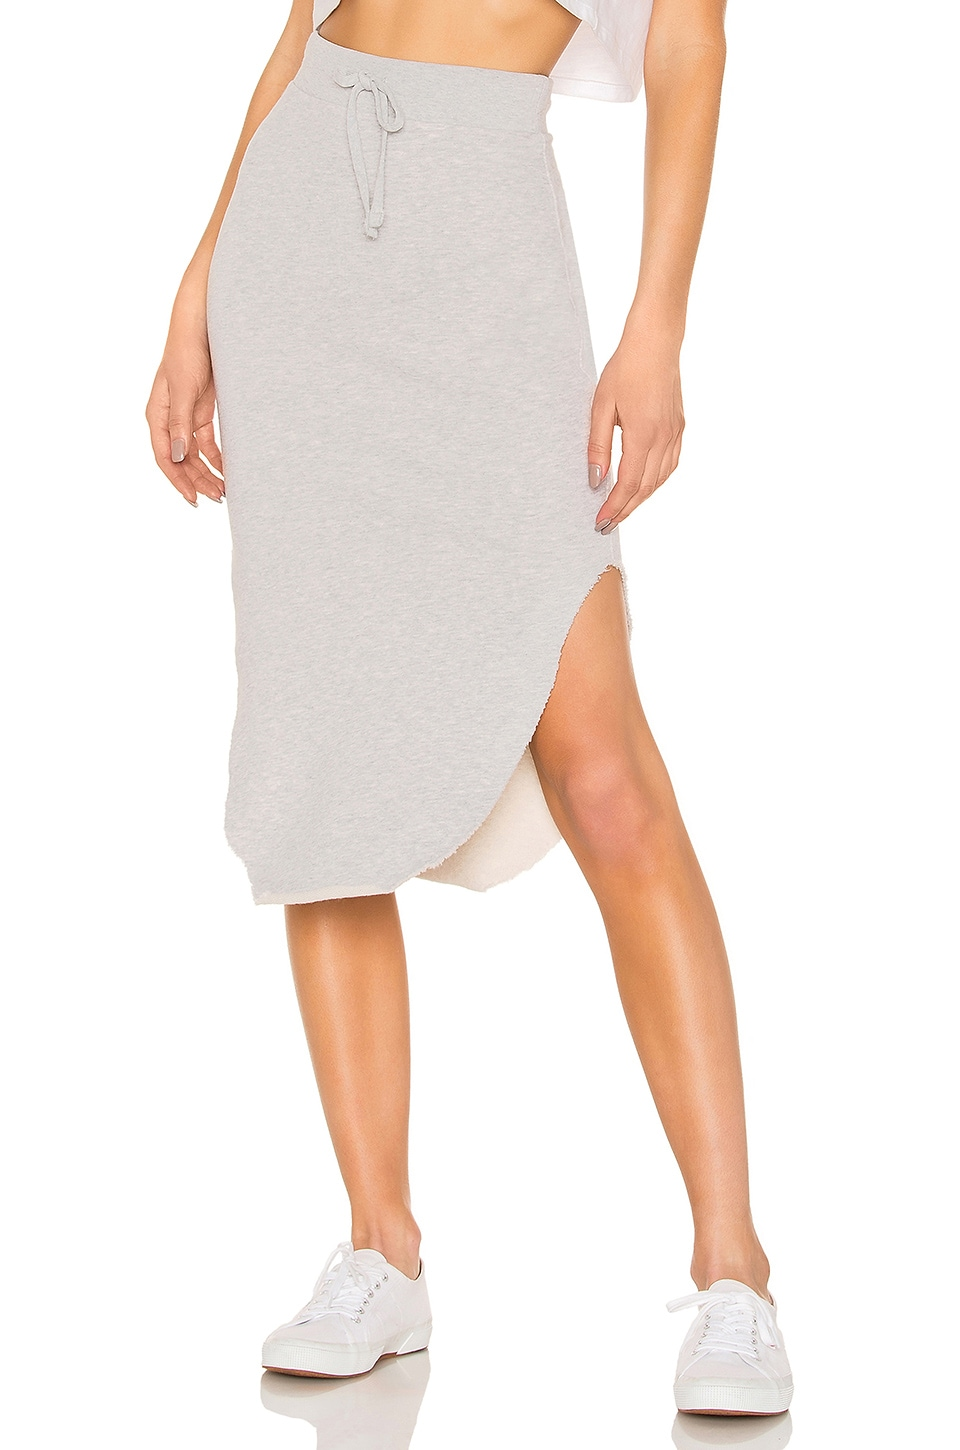 Frank & Eileen Tee Lab Long Fleece Skirt in Gray Melange